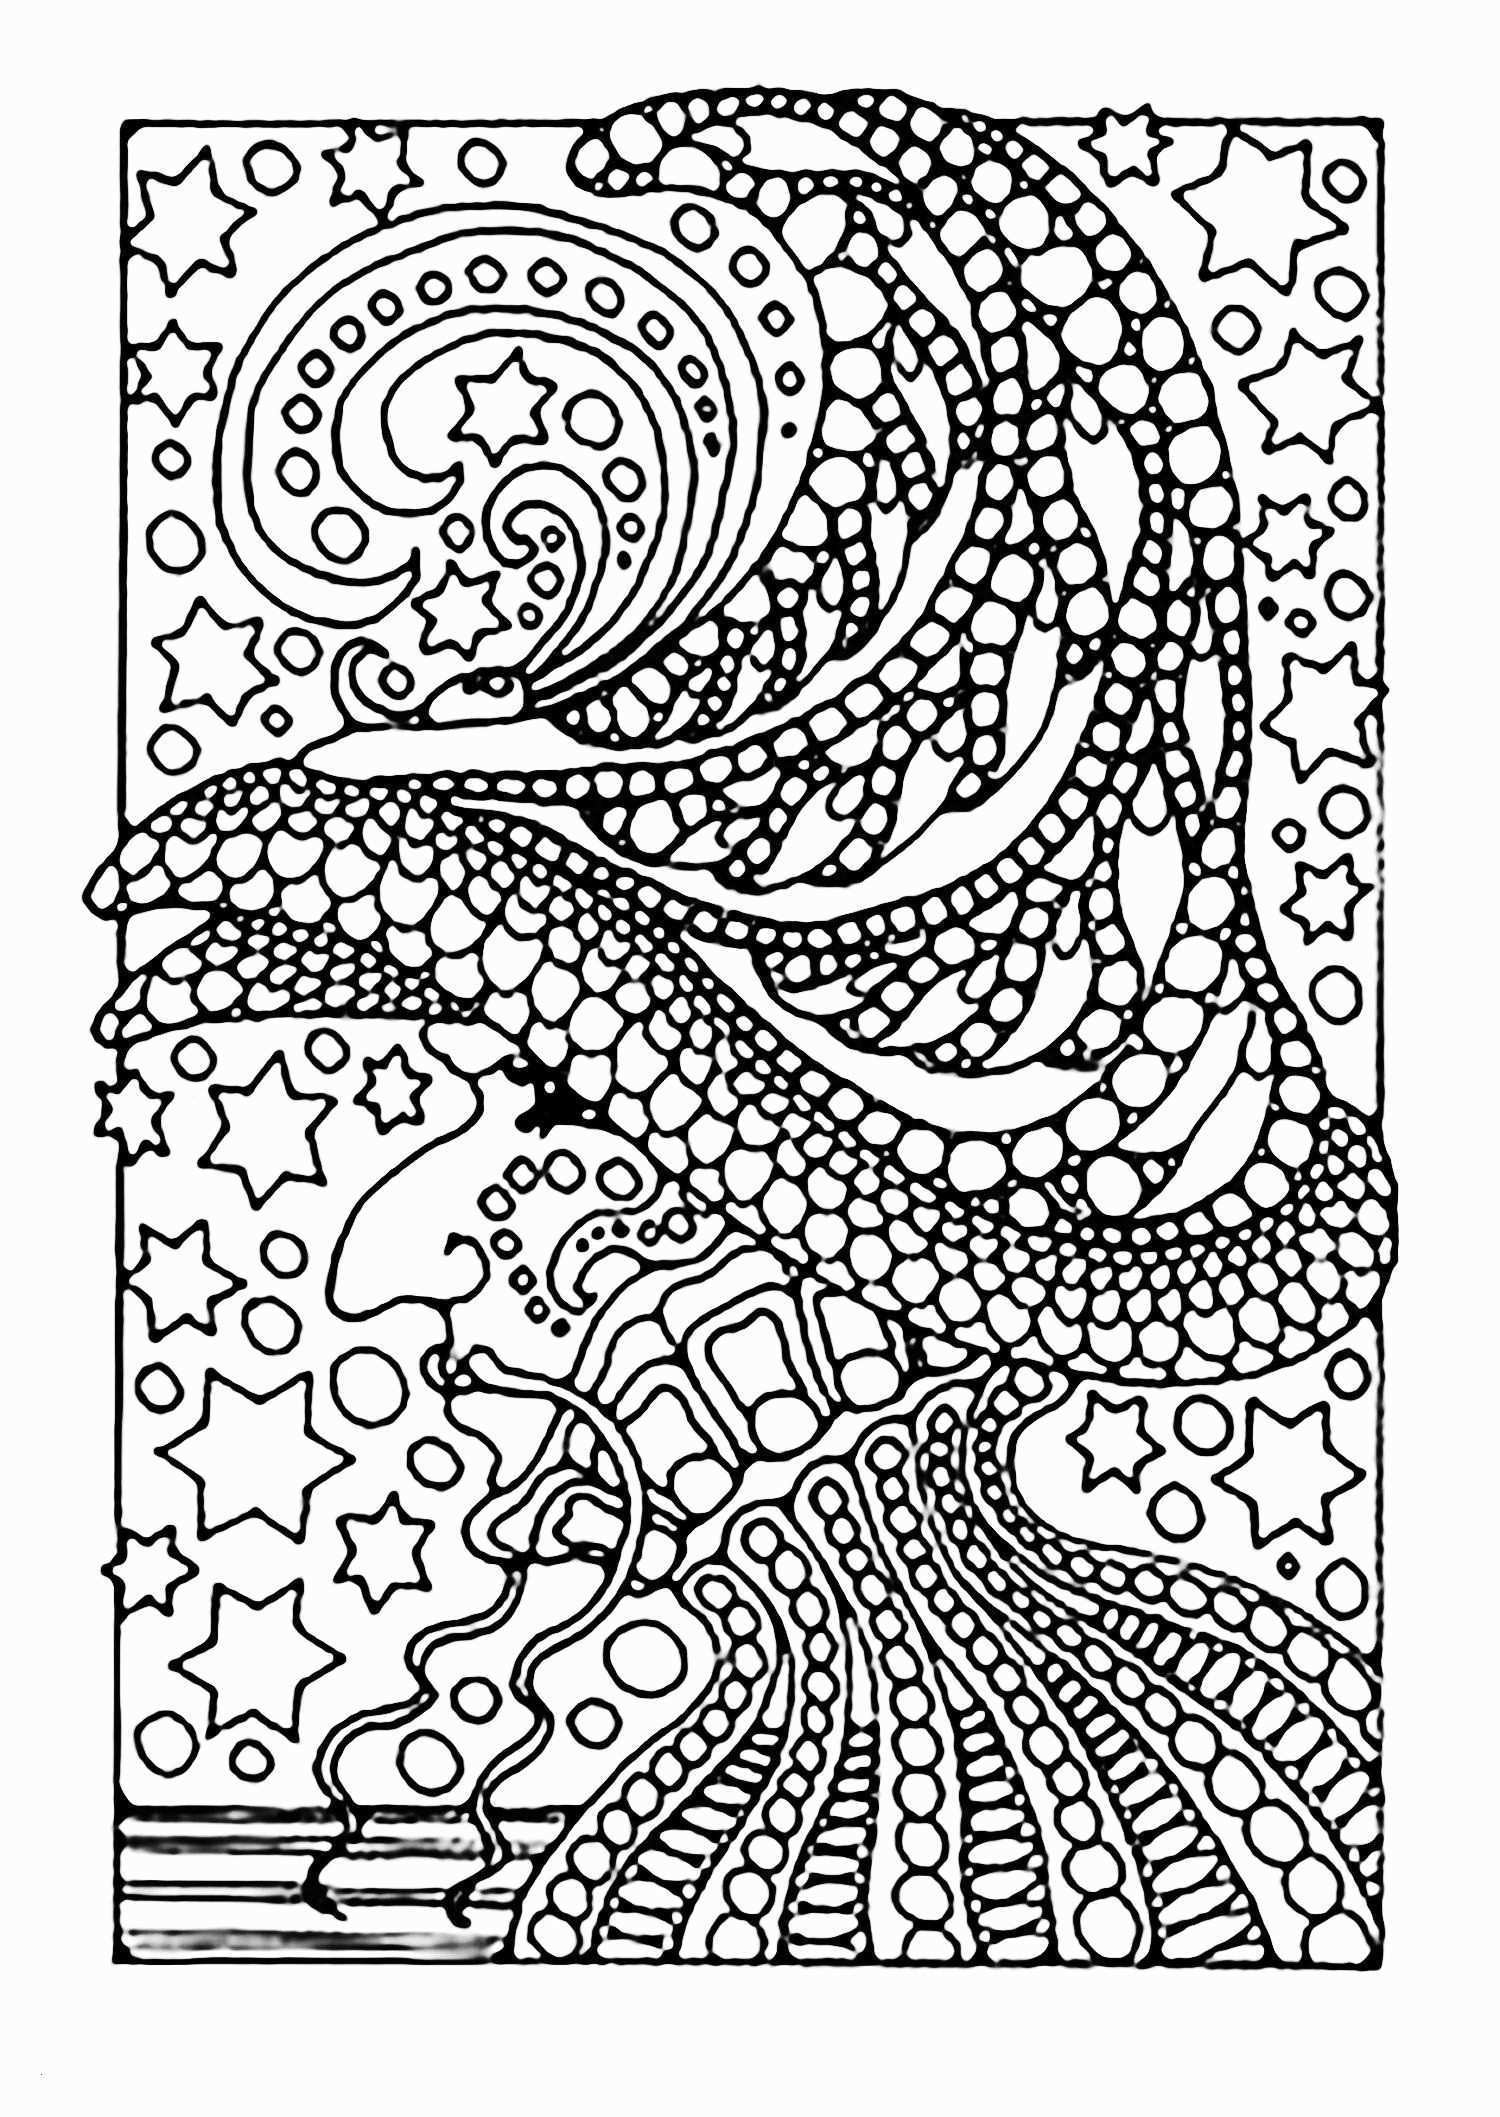 45 Luxury Pics Stuff to Color for Adults